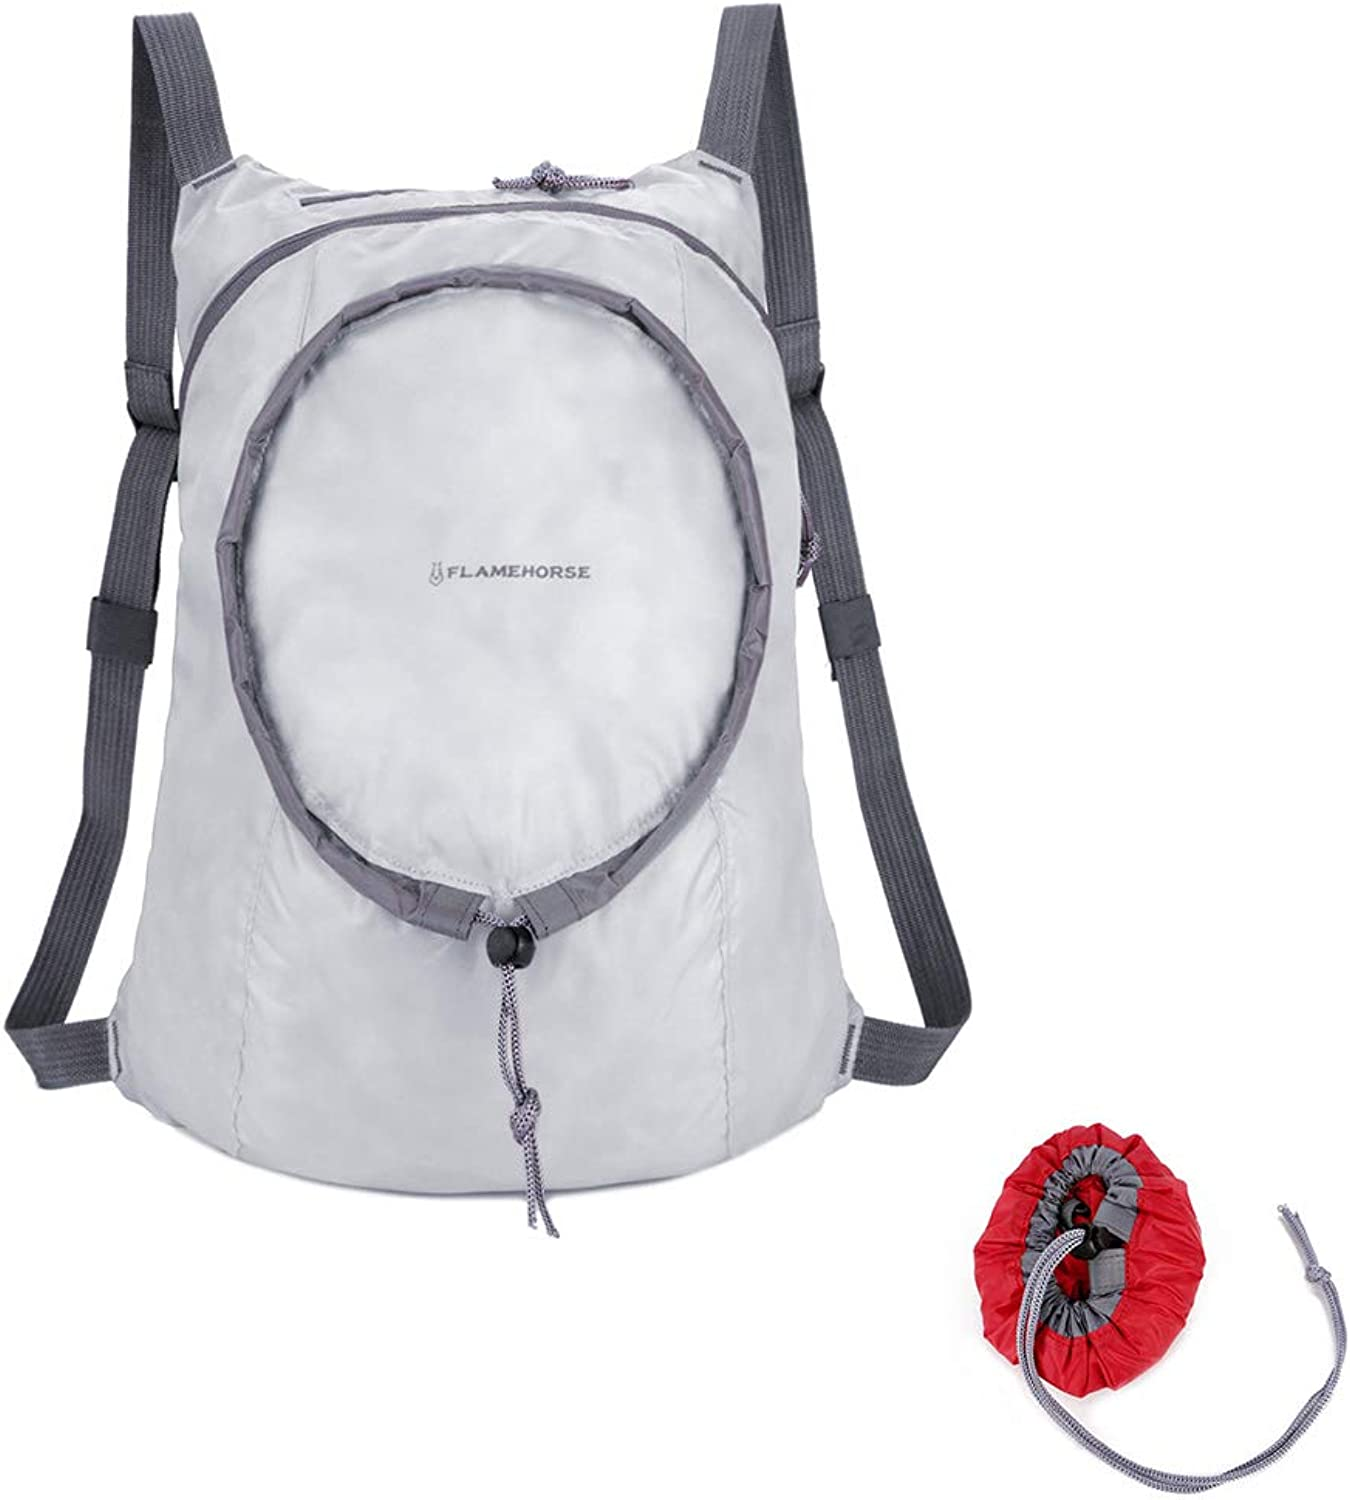 Outdoor Sports Backpack Mountaineering Hiking Bag Shoulder Tactical Backpack Large Capacity Hiking Backpack